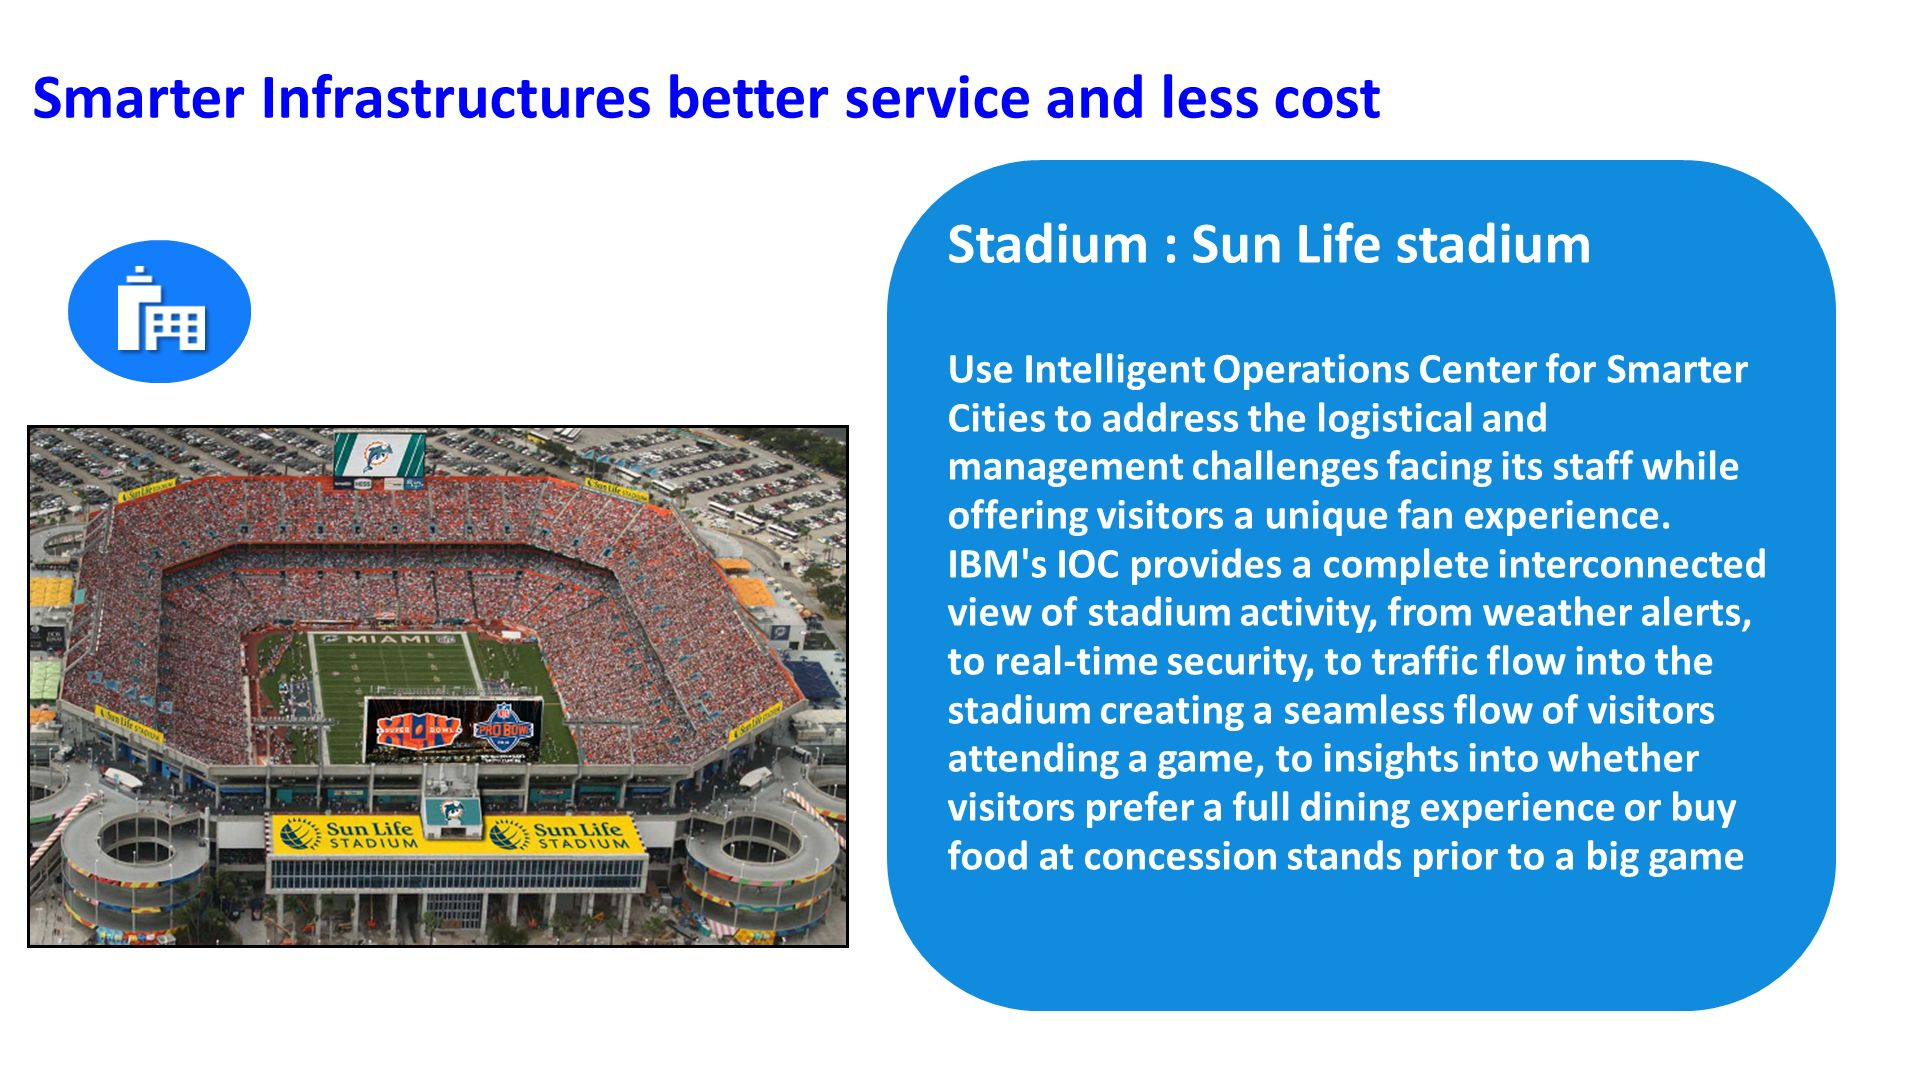 Stadium : Sun Life stadium Use Intelligent Operations Center for Smarter Cities to address the logistical and management challenges facing its staff while offering visitors a unique fan experience.